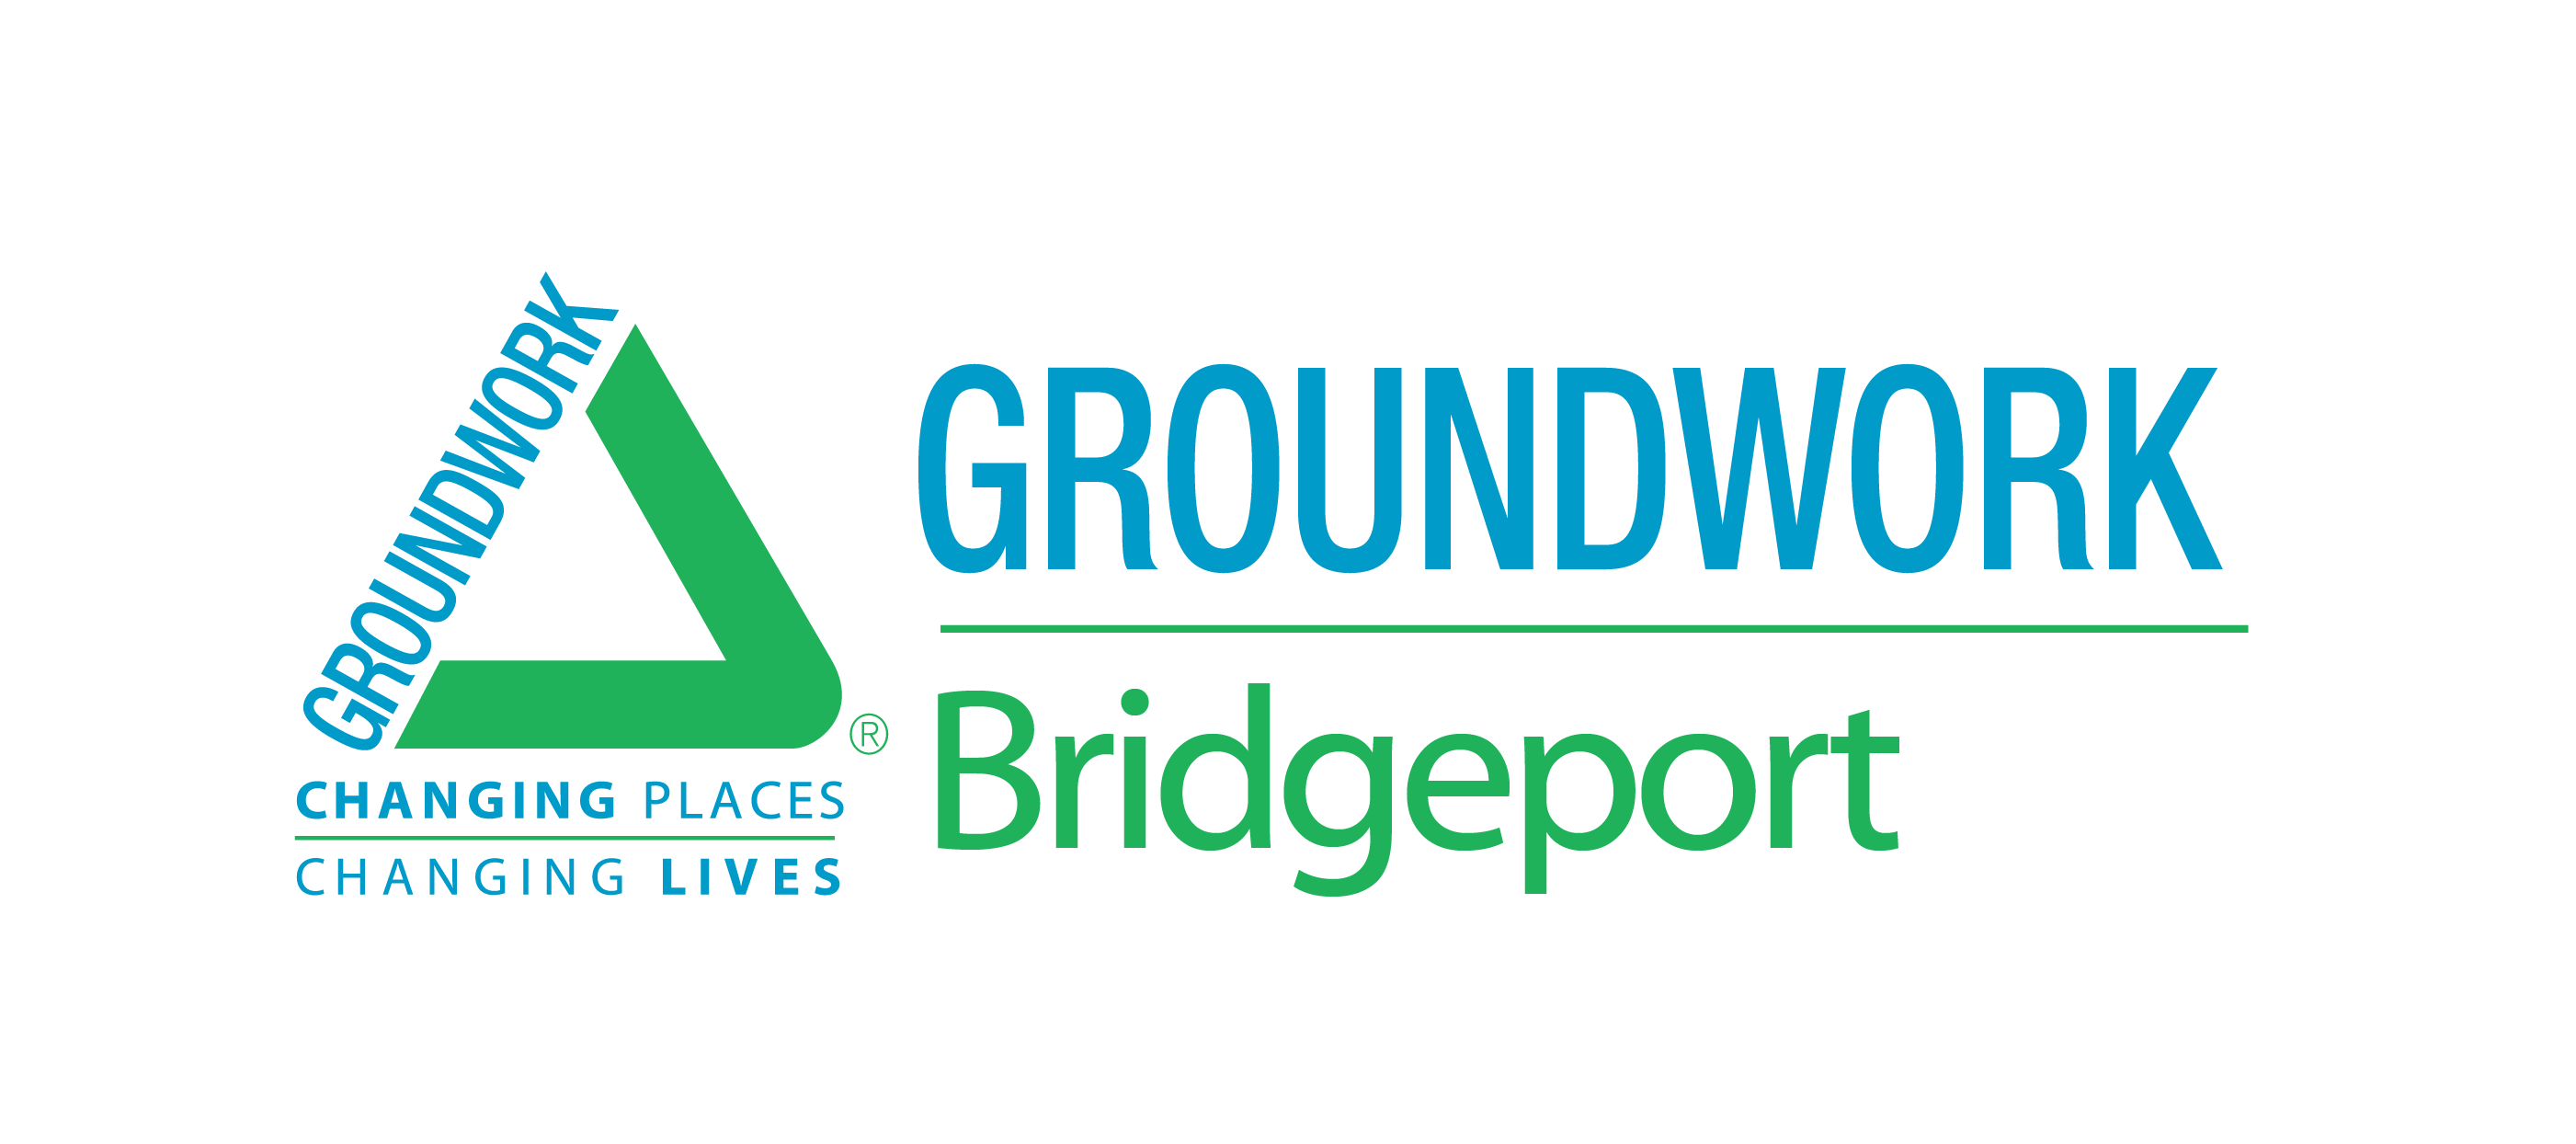 Groundwork Bridgeport